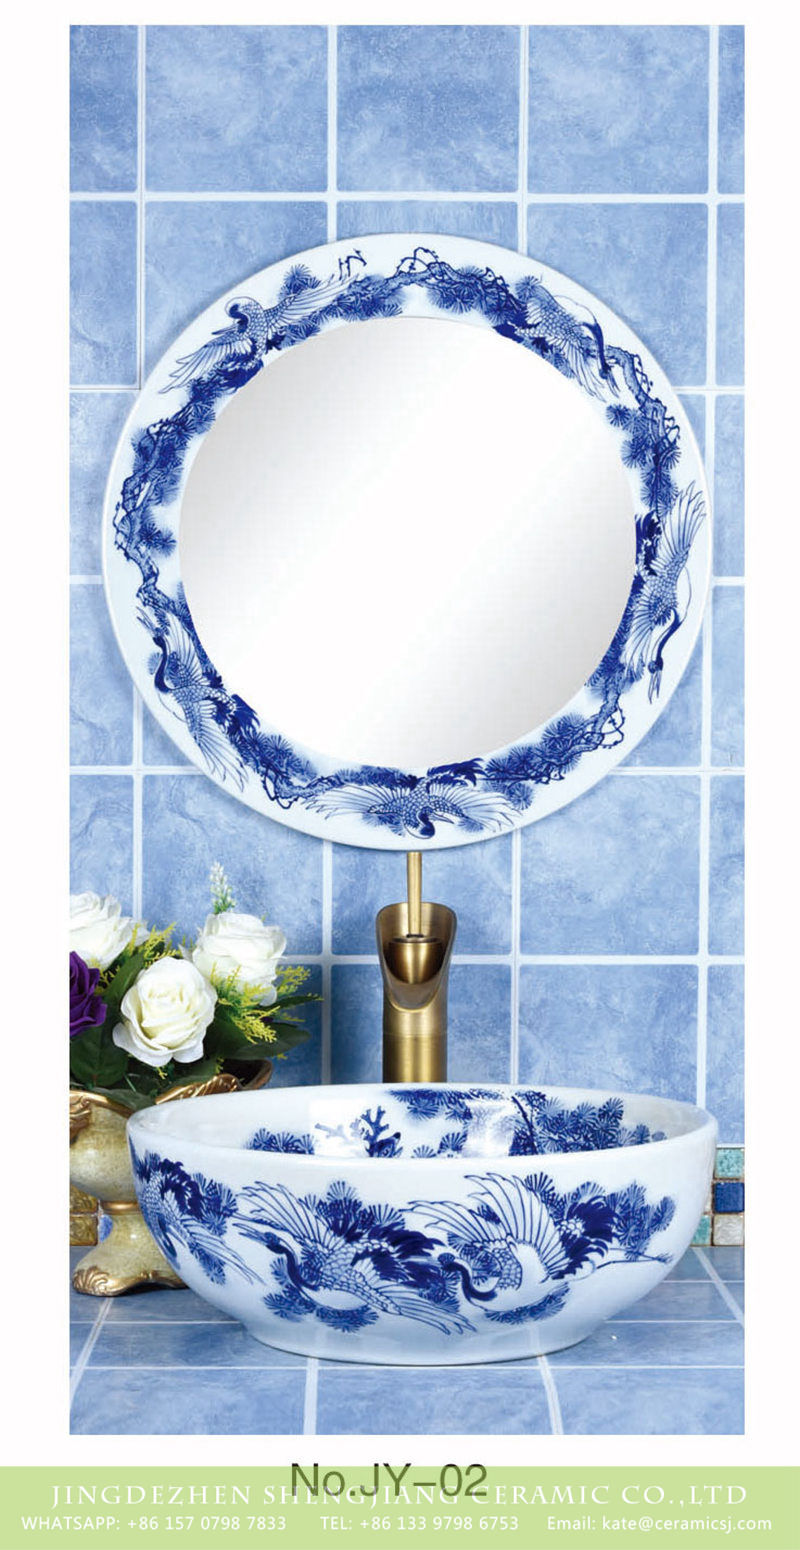 SJJY-02-2青花台盆_09 Chinese traditional blue and white ceramic with beautiful red-crowned cranes pattern wash sink - shengjiang  ceramic  factory   porcelain art hand basin wash sink